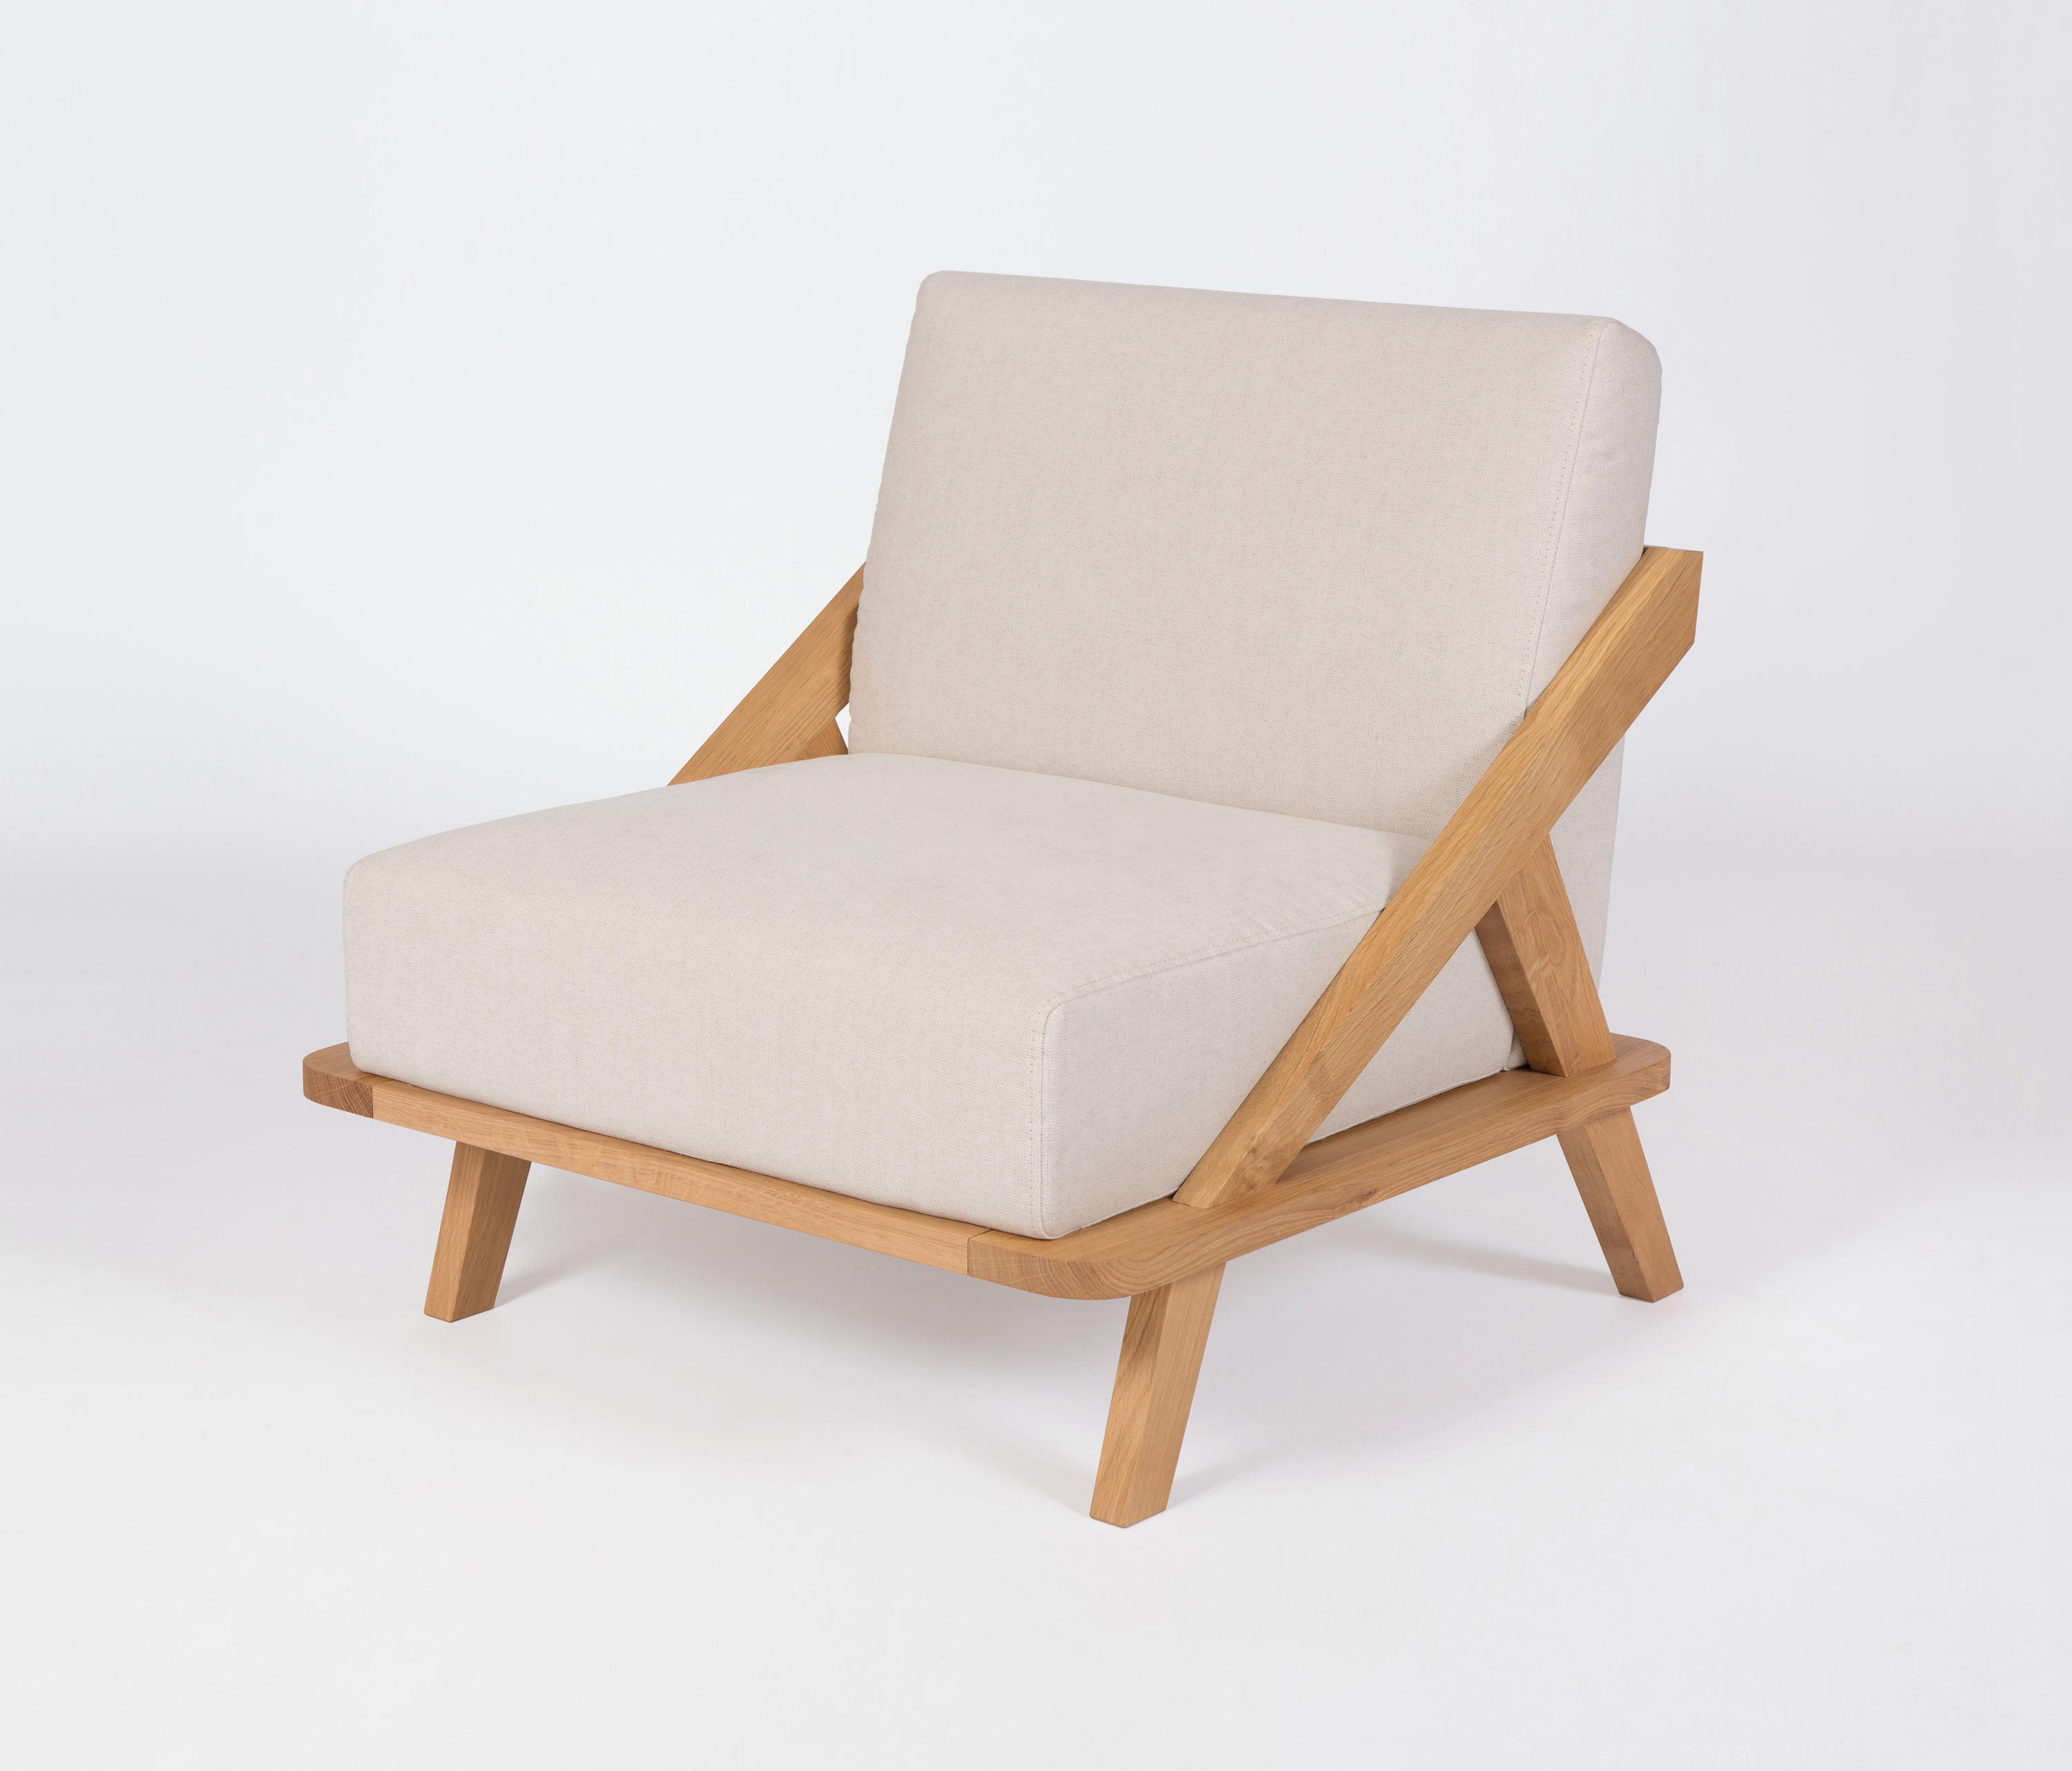 nordic furniture. Nordic Space Chair By Ellenberger | Lounge Chairs Furniture F